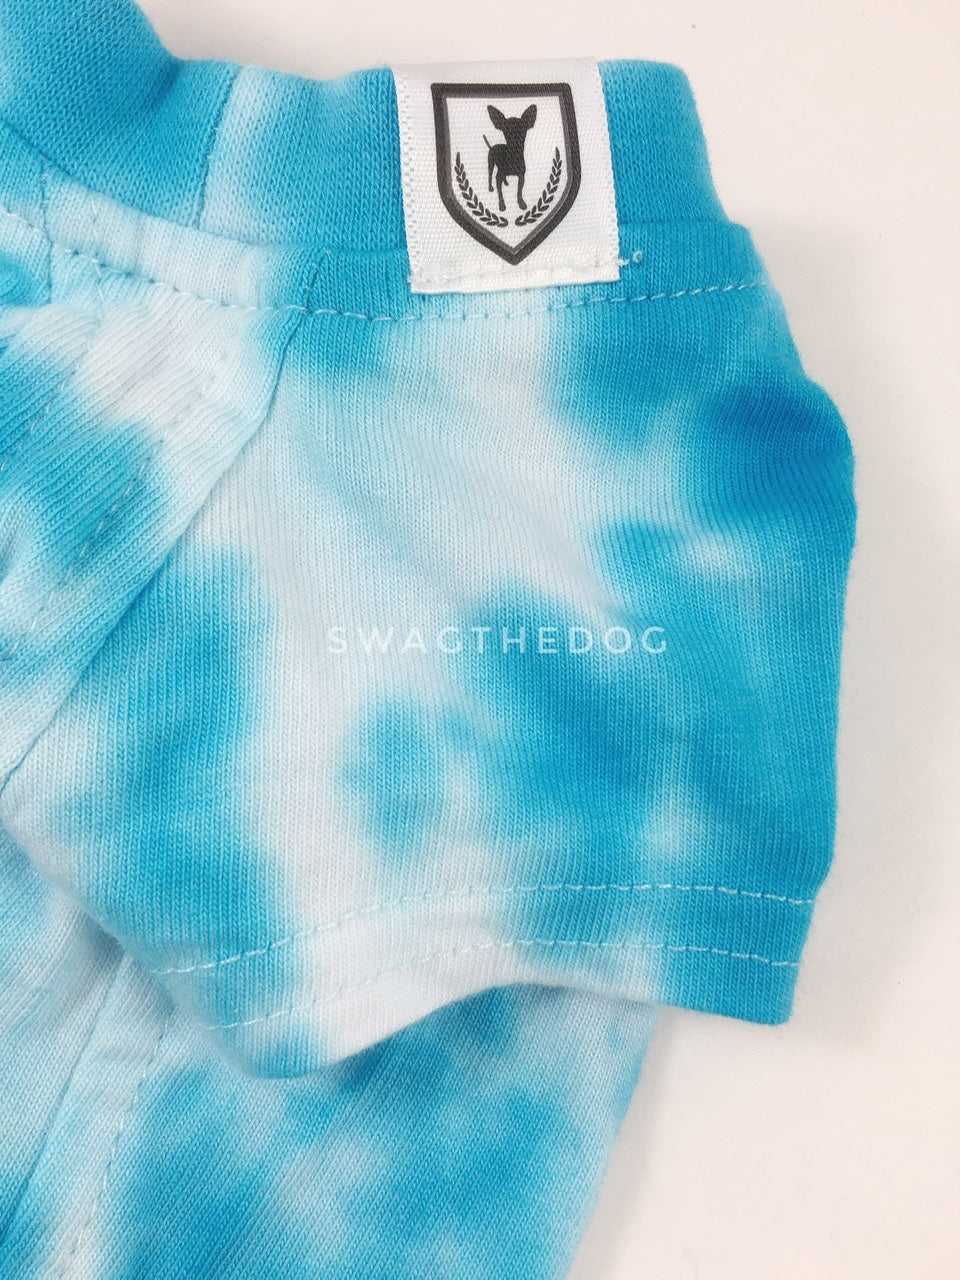 Swagadelic Sky Blue Tie Dye Tee - Close-up of product front view. The hand tie-dyed tee with Sky Blue